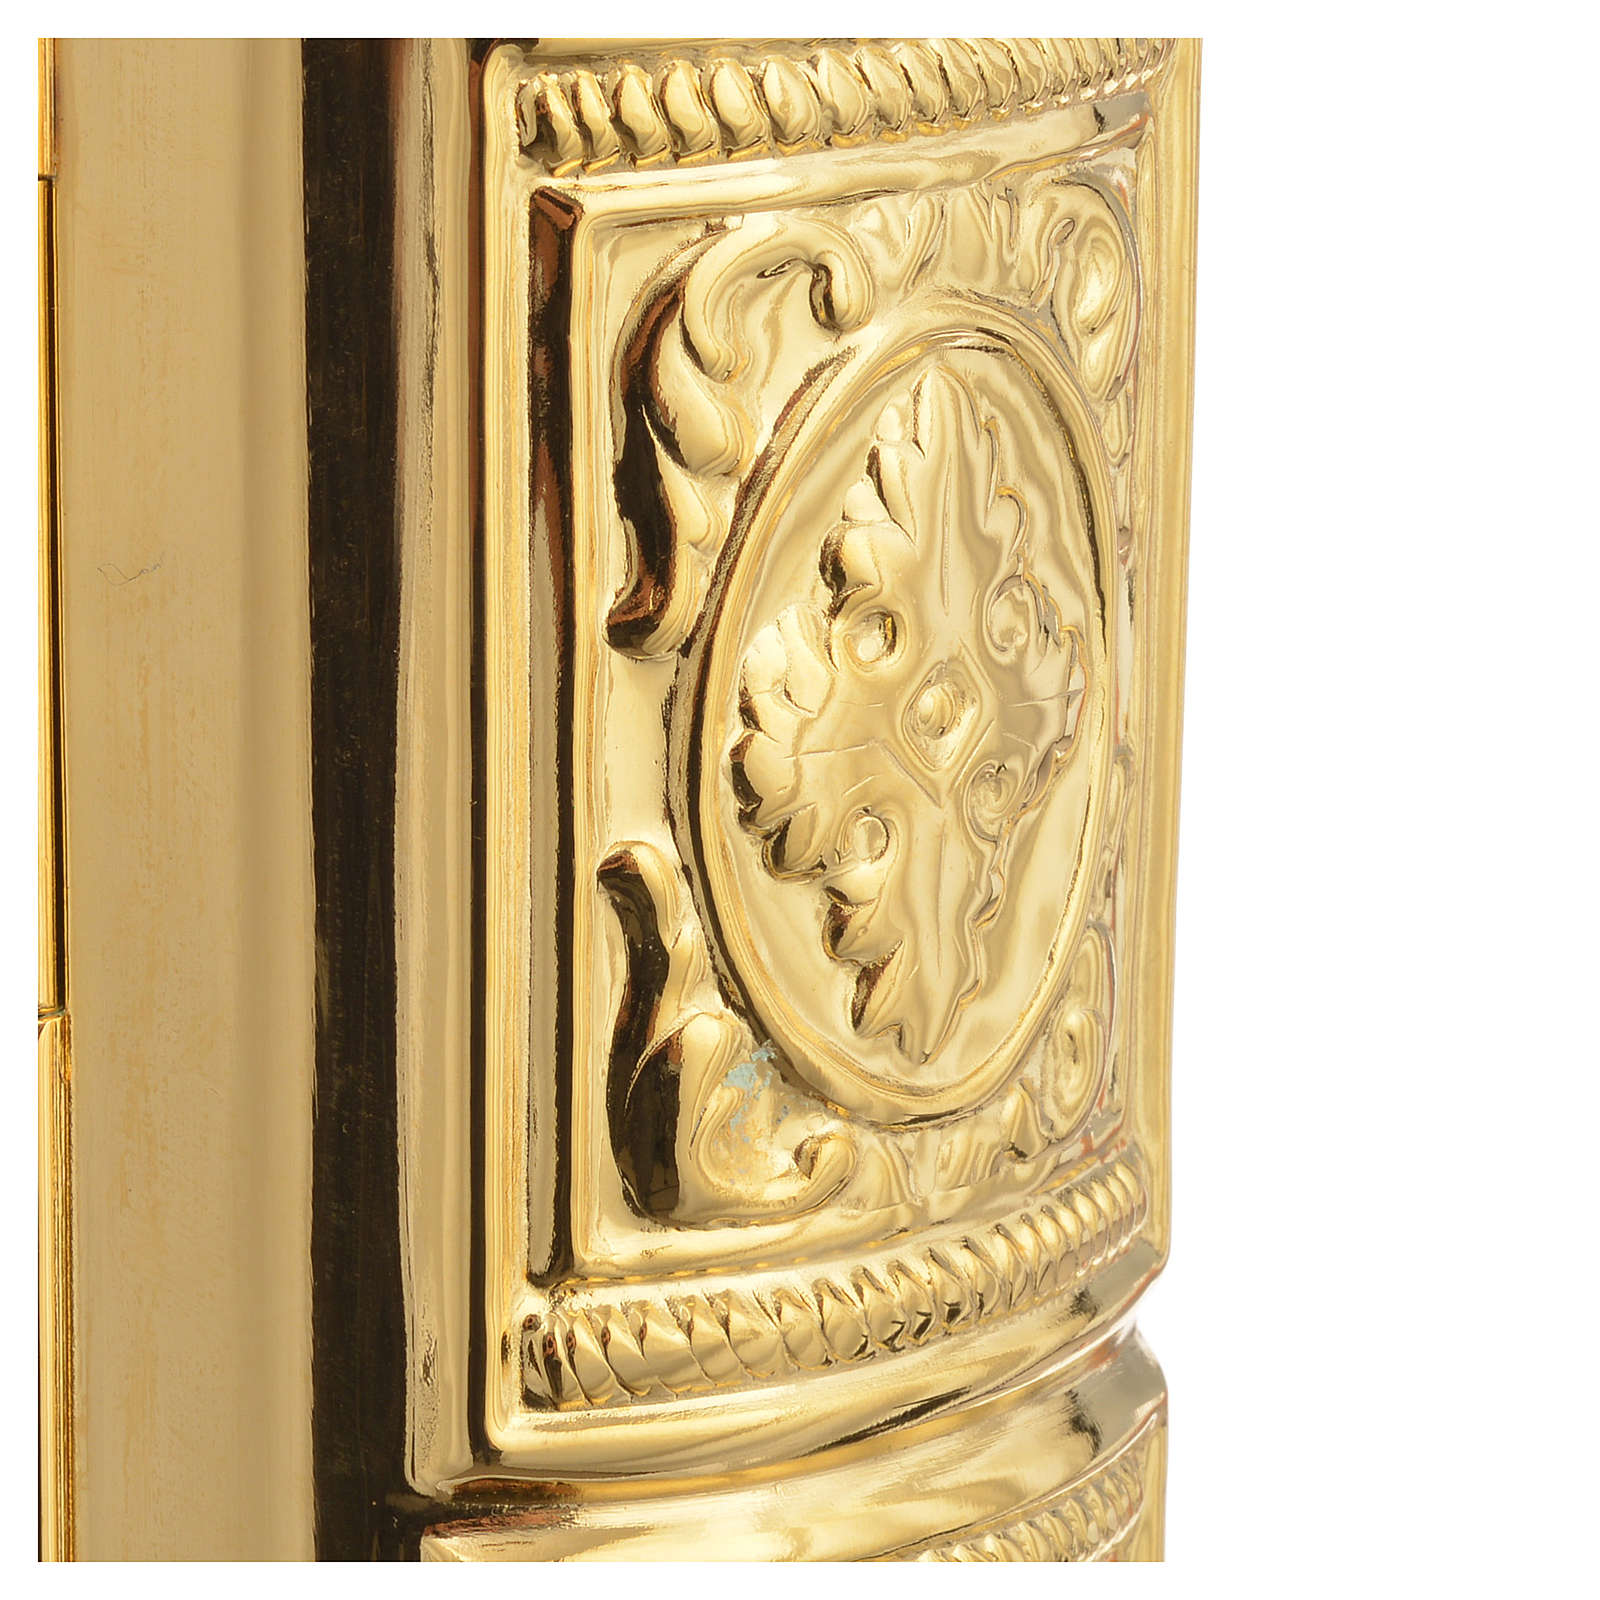 Missal Cover in Gold Brass with Crucifixion Scene 4